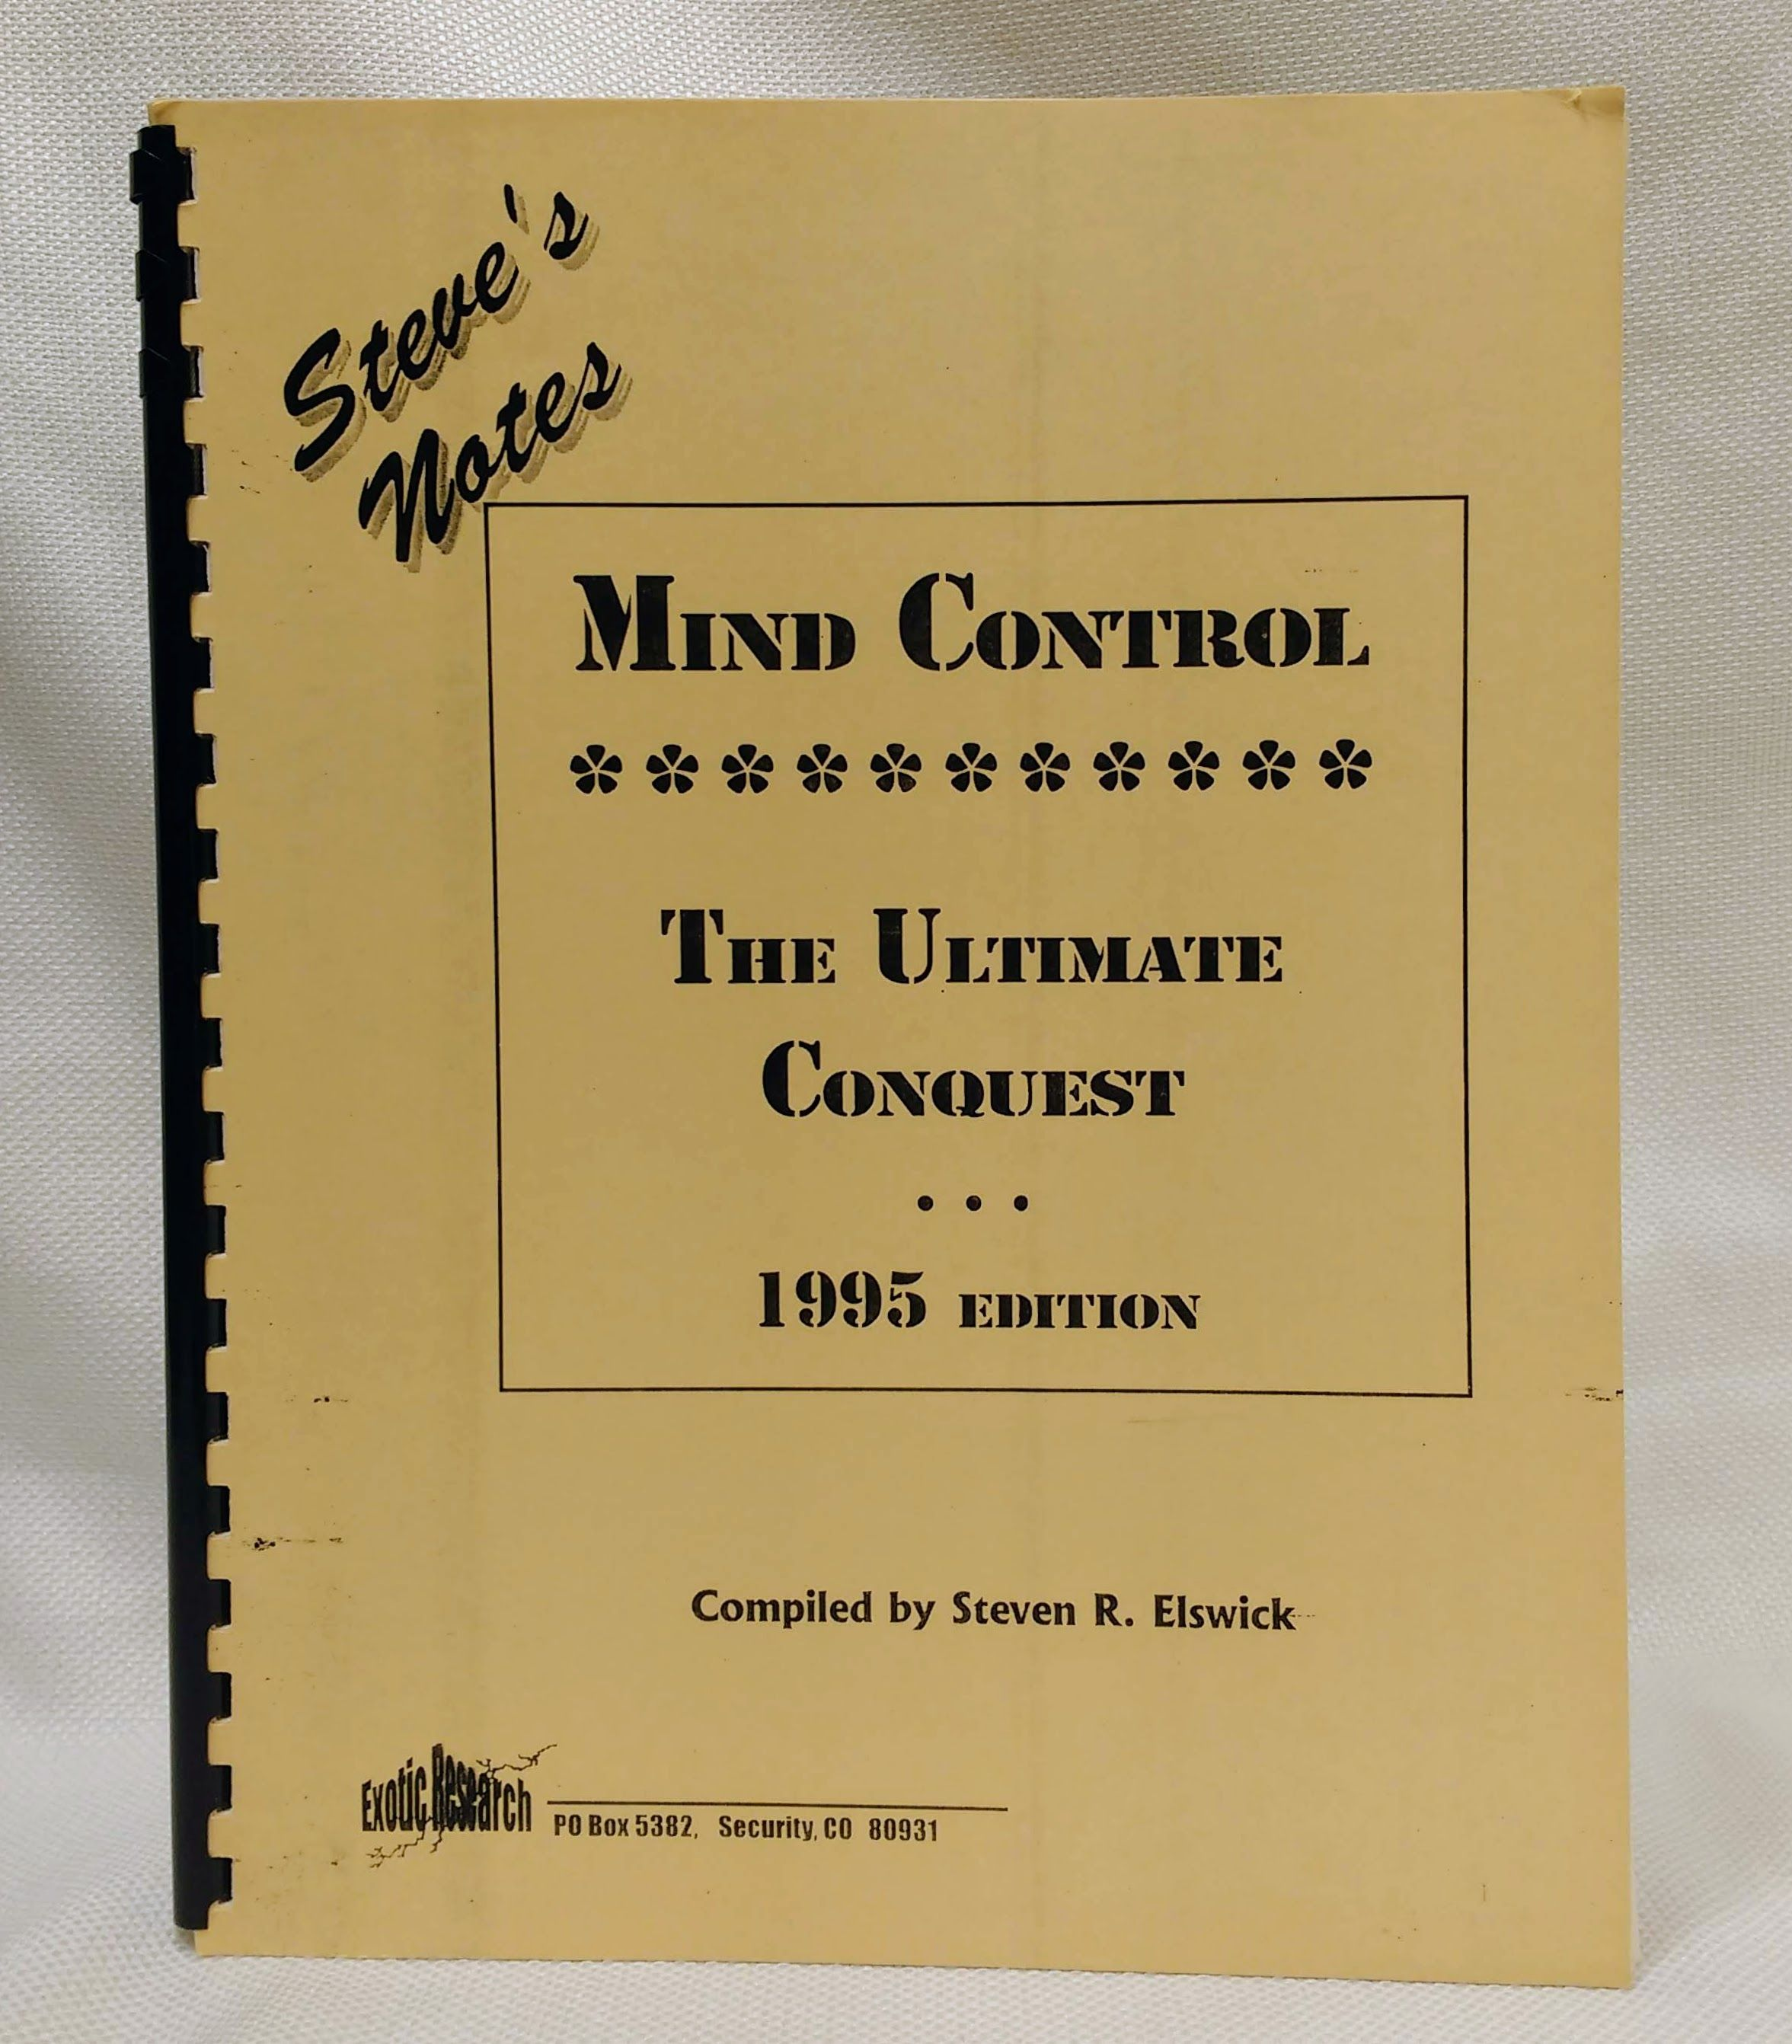 Steve's Notes: Mind Control: The Ultimate Conquest, Steven R. Elswick [Compiler]